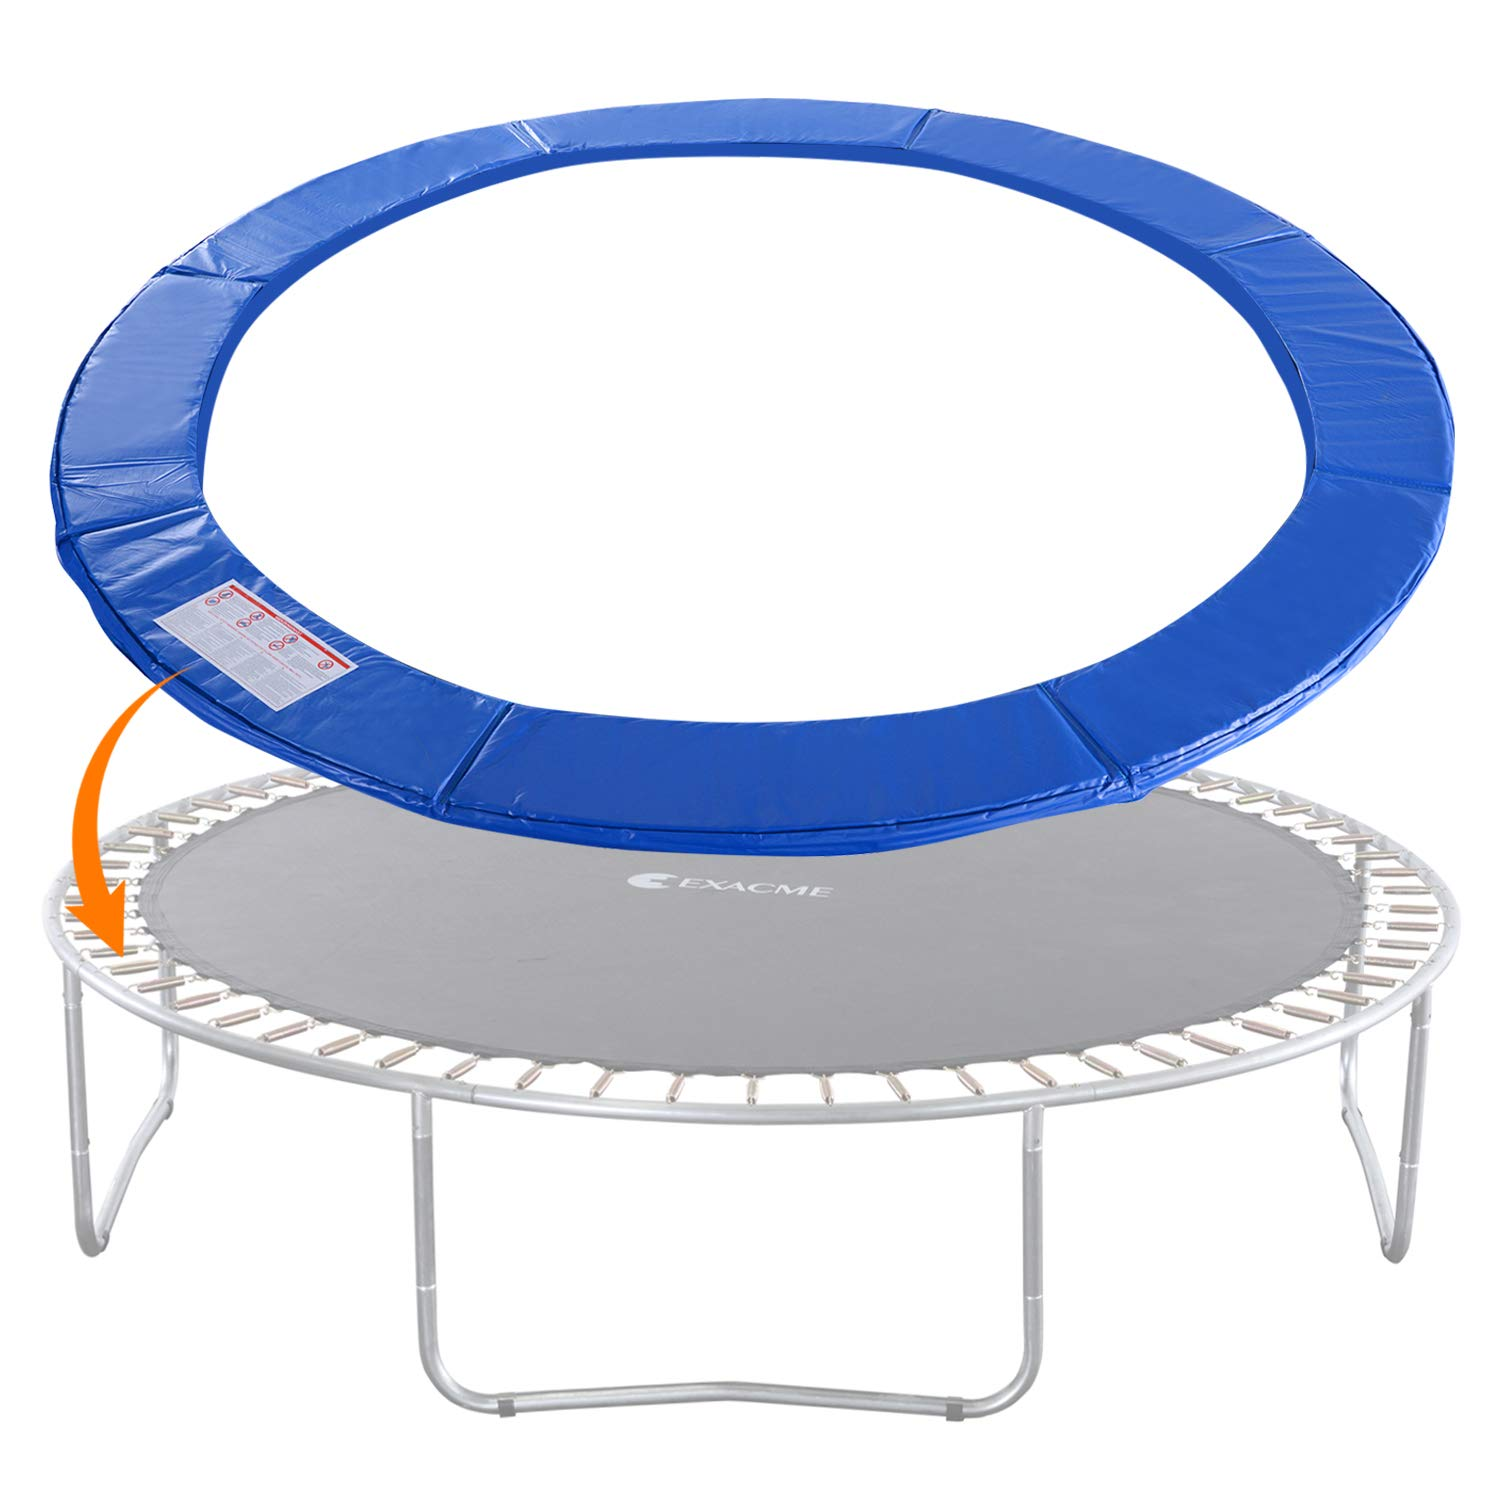 Exacme Trampoline Replacement Safety Pad Round Spring Cover, No Slots (Blue, 8 Foot) by Exacme